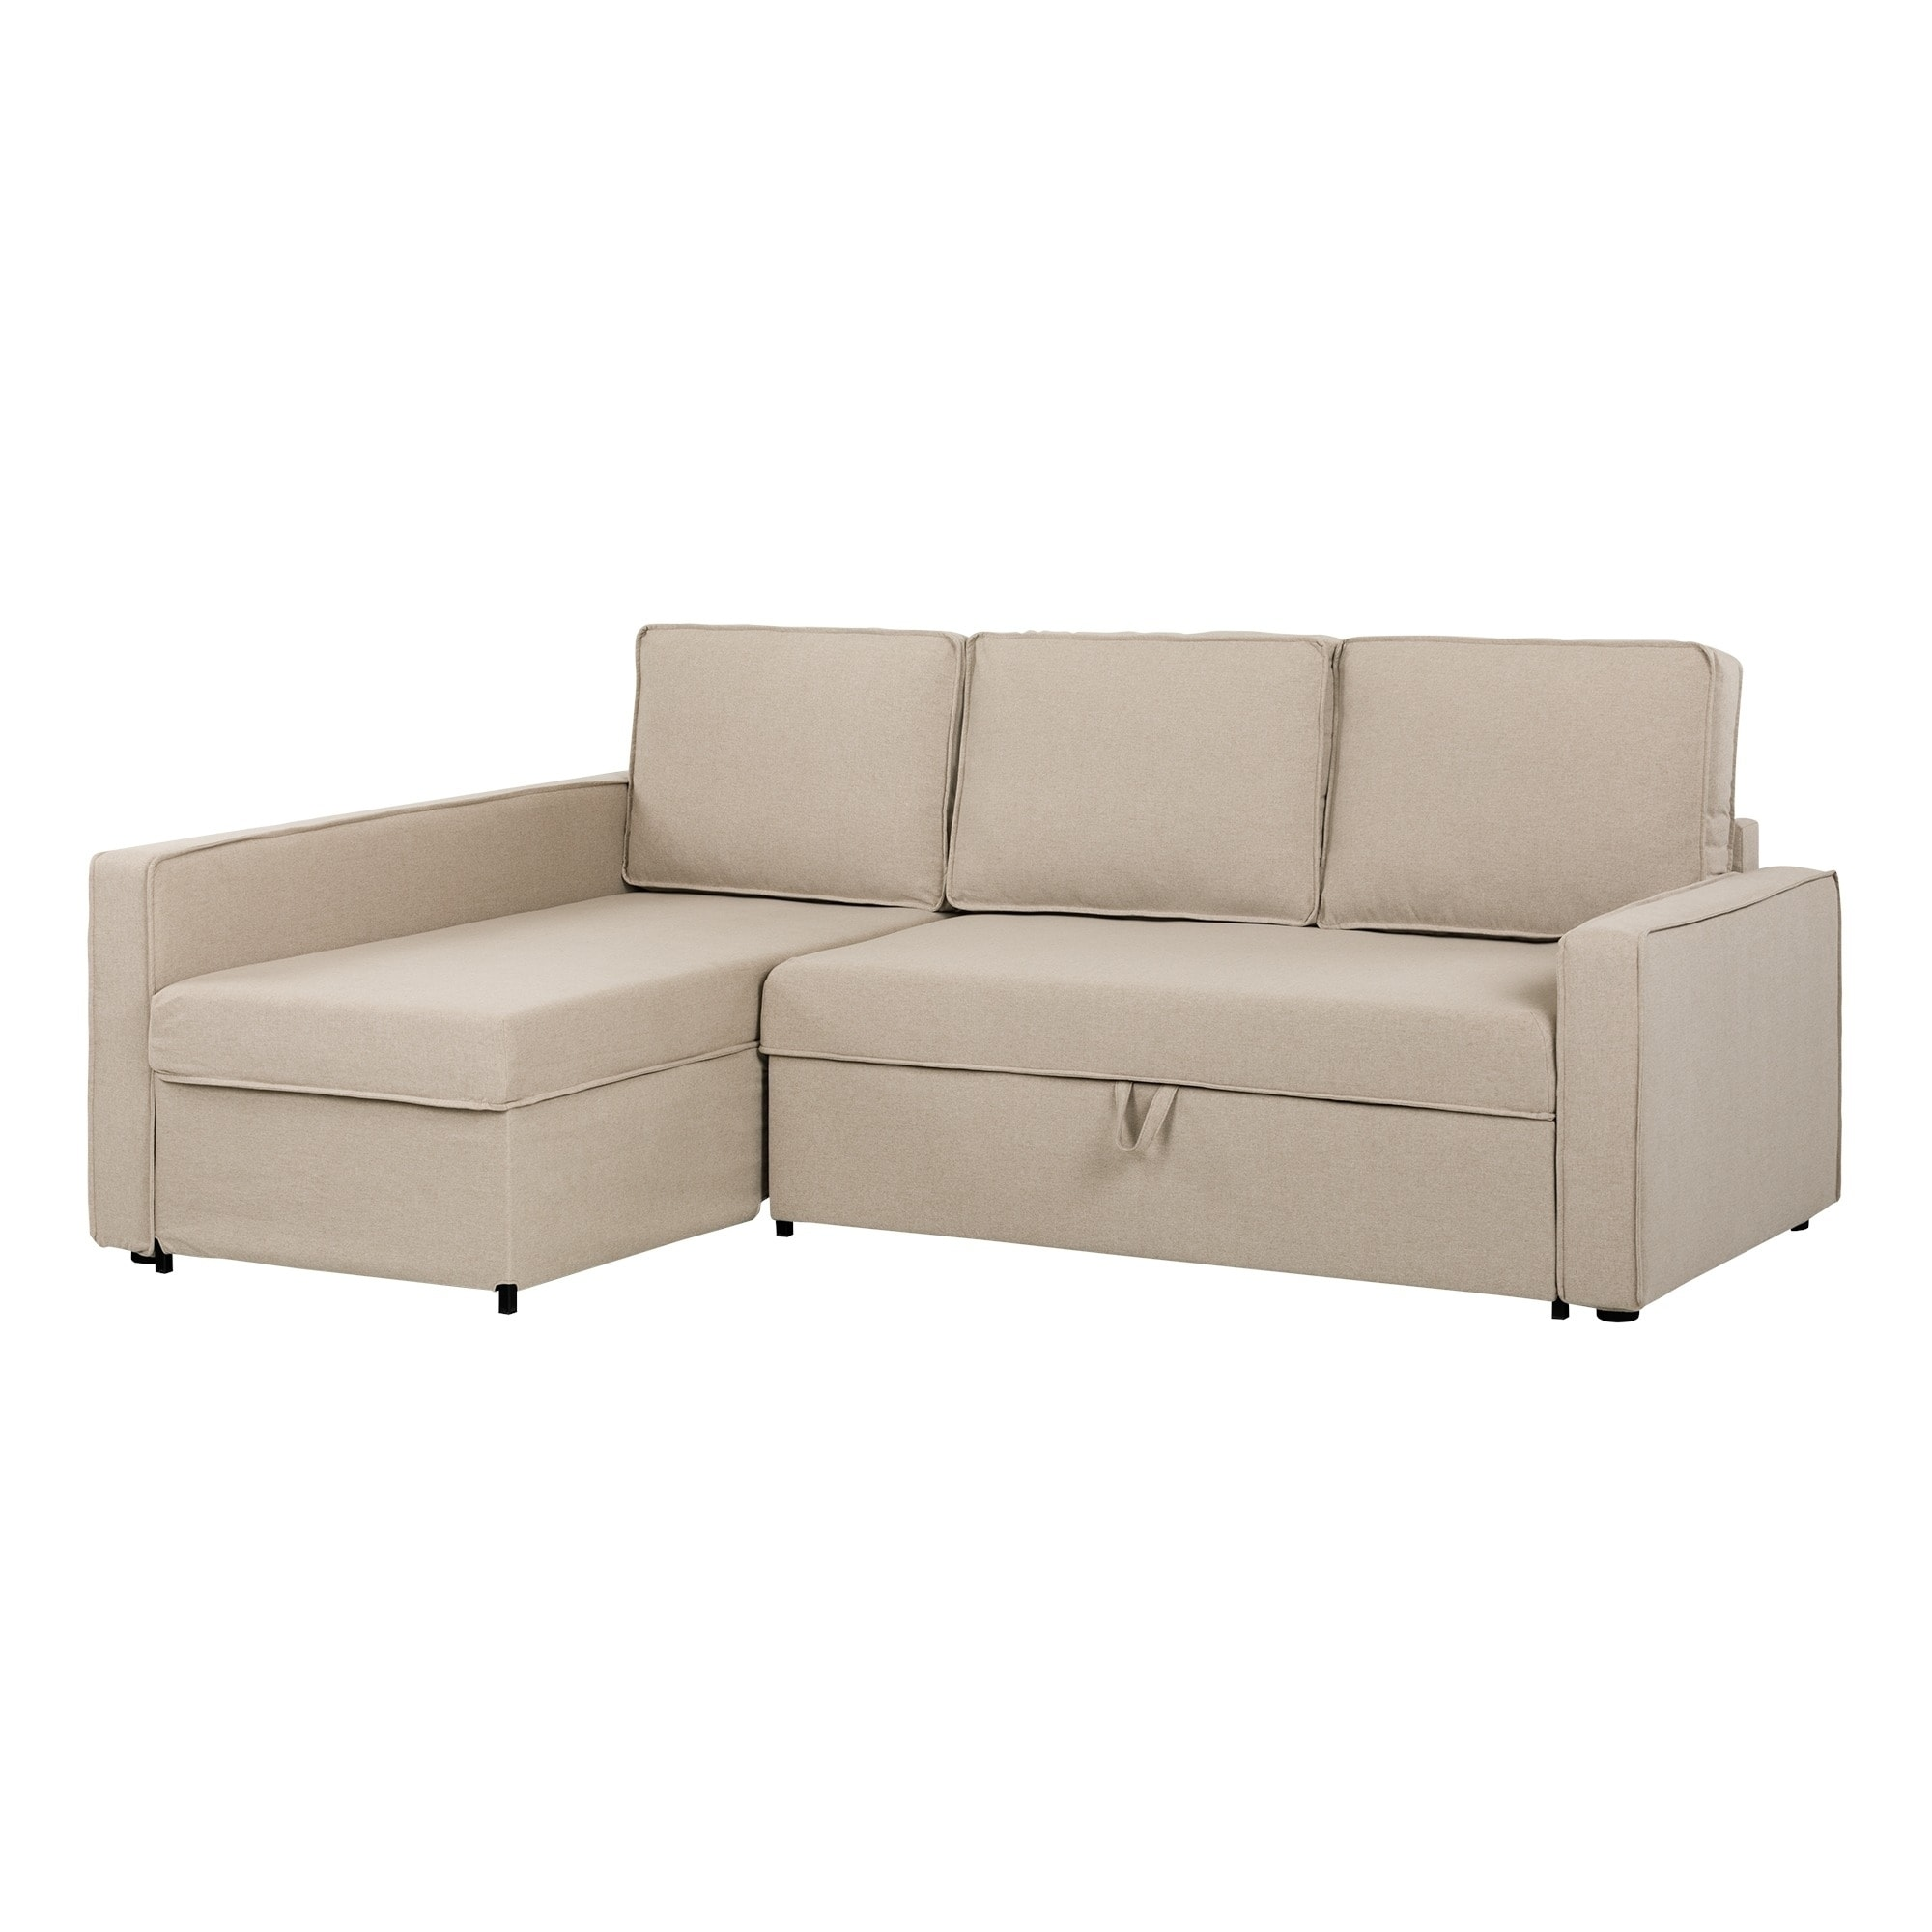 Sectional Sofa Connectors Canada: South Shore Live-it Cozy Sectional Sofa-Bed With Storage